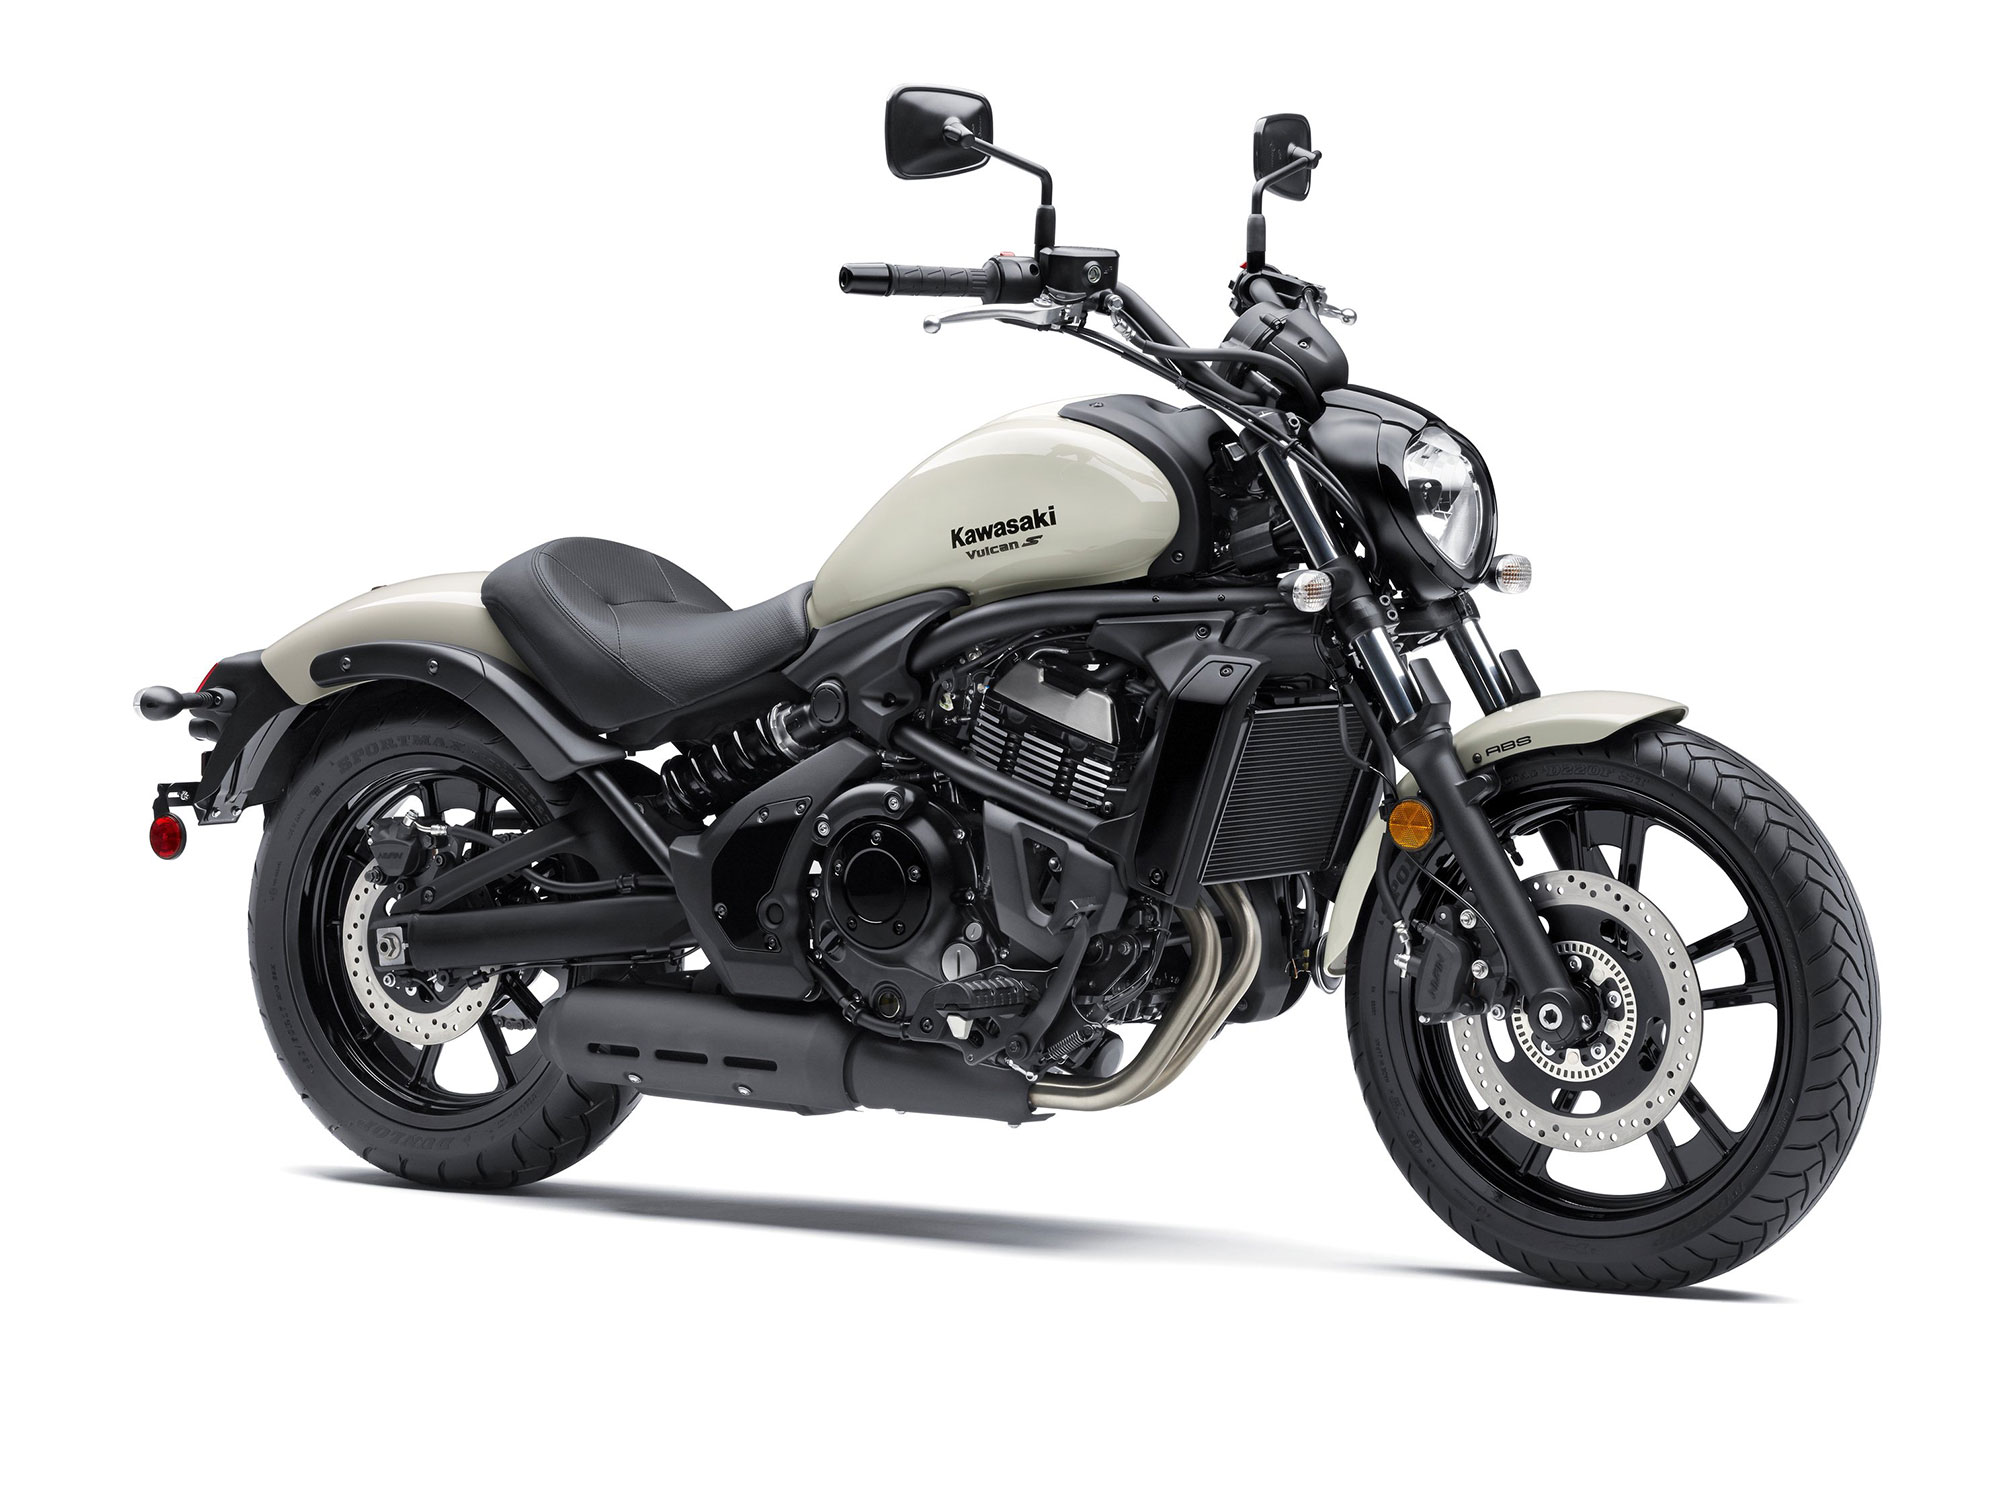 2016 kawasaki vulcan s abs review. Black Bedroom Furniture Sets. Home Design Ideas